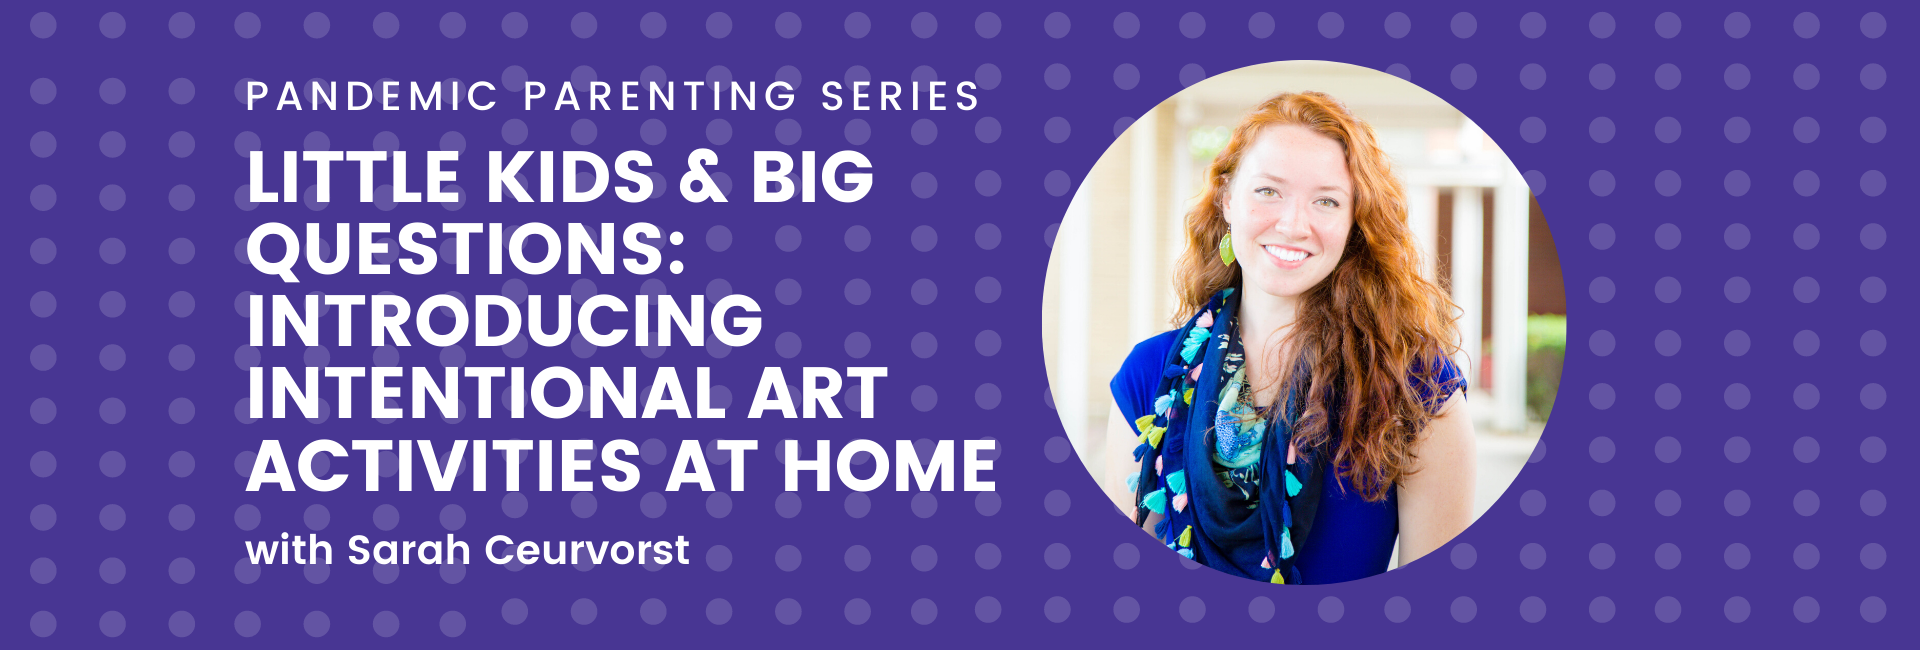 Little Kids & Big Questions: Introducing Intentional Art Activities at Home